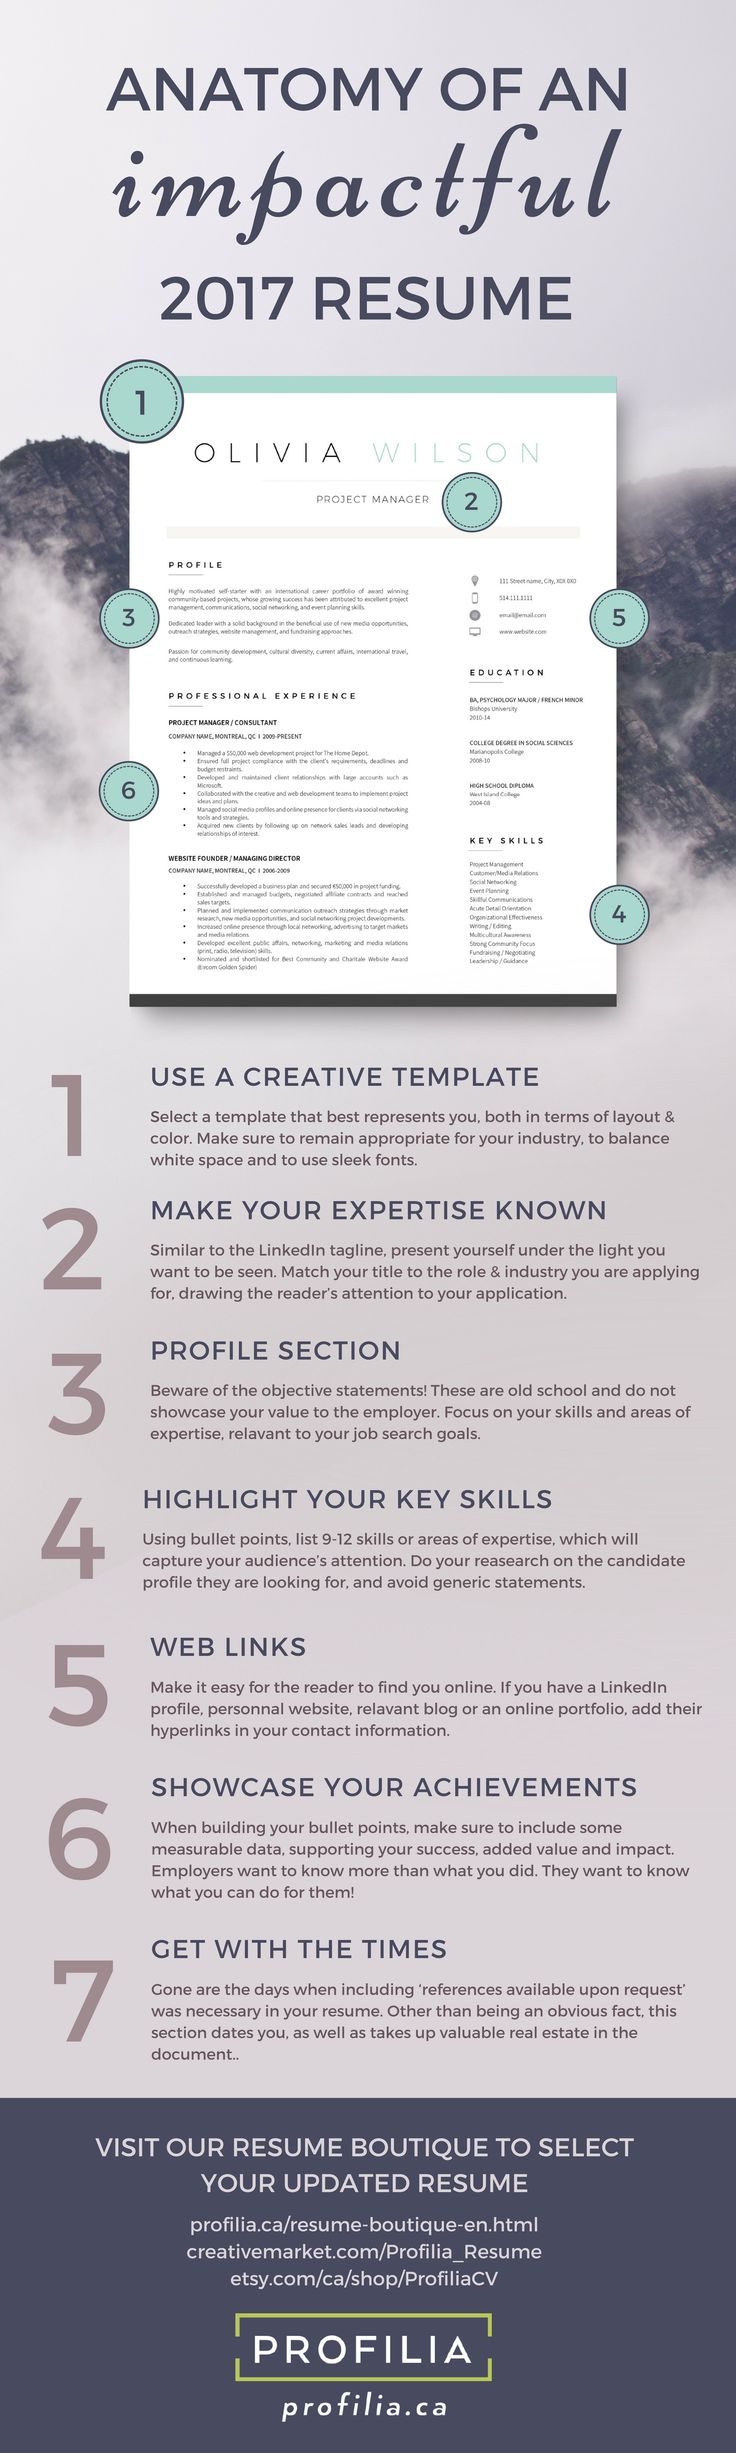 Word Resume u0026 Cover Letter Template 326